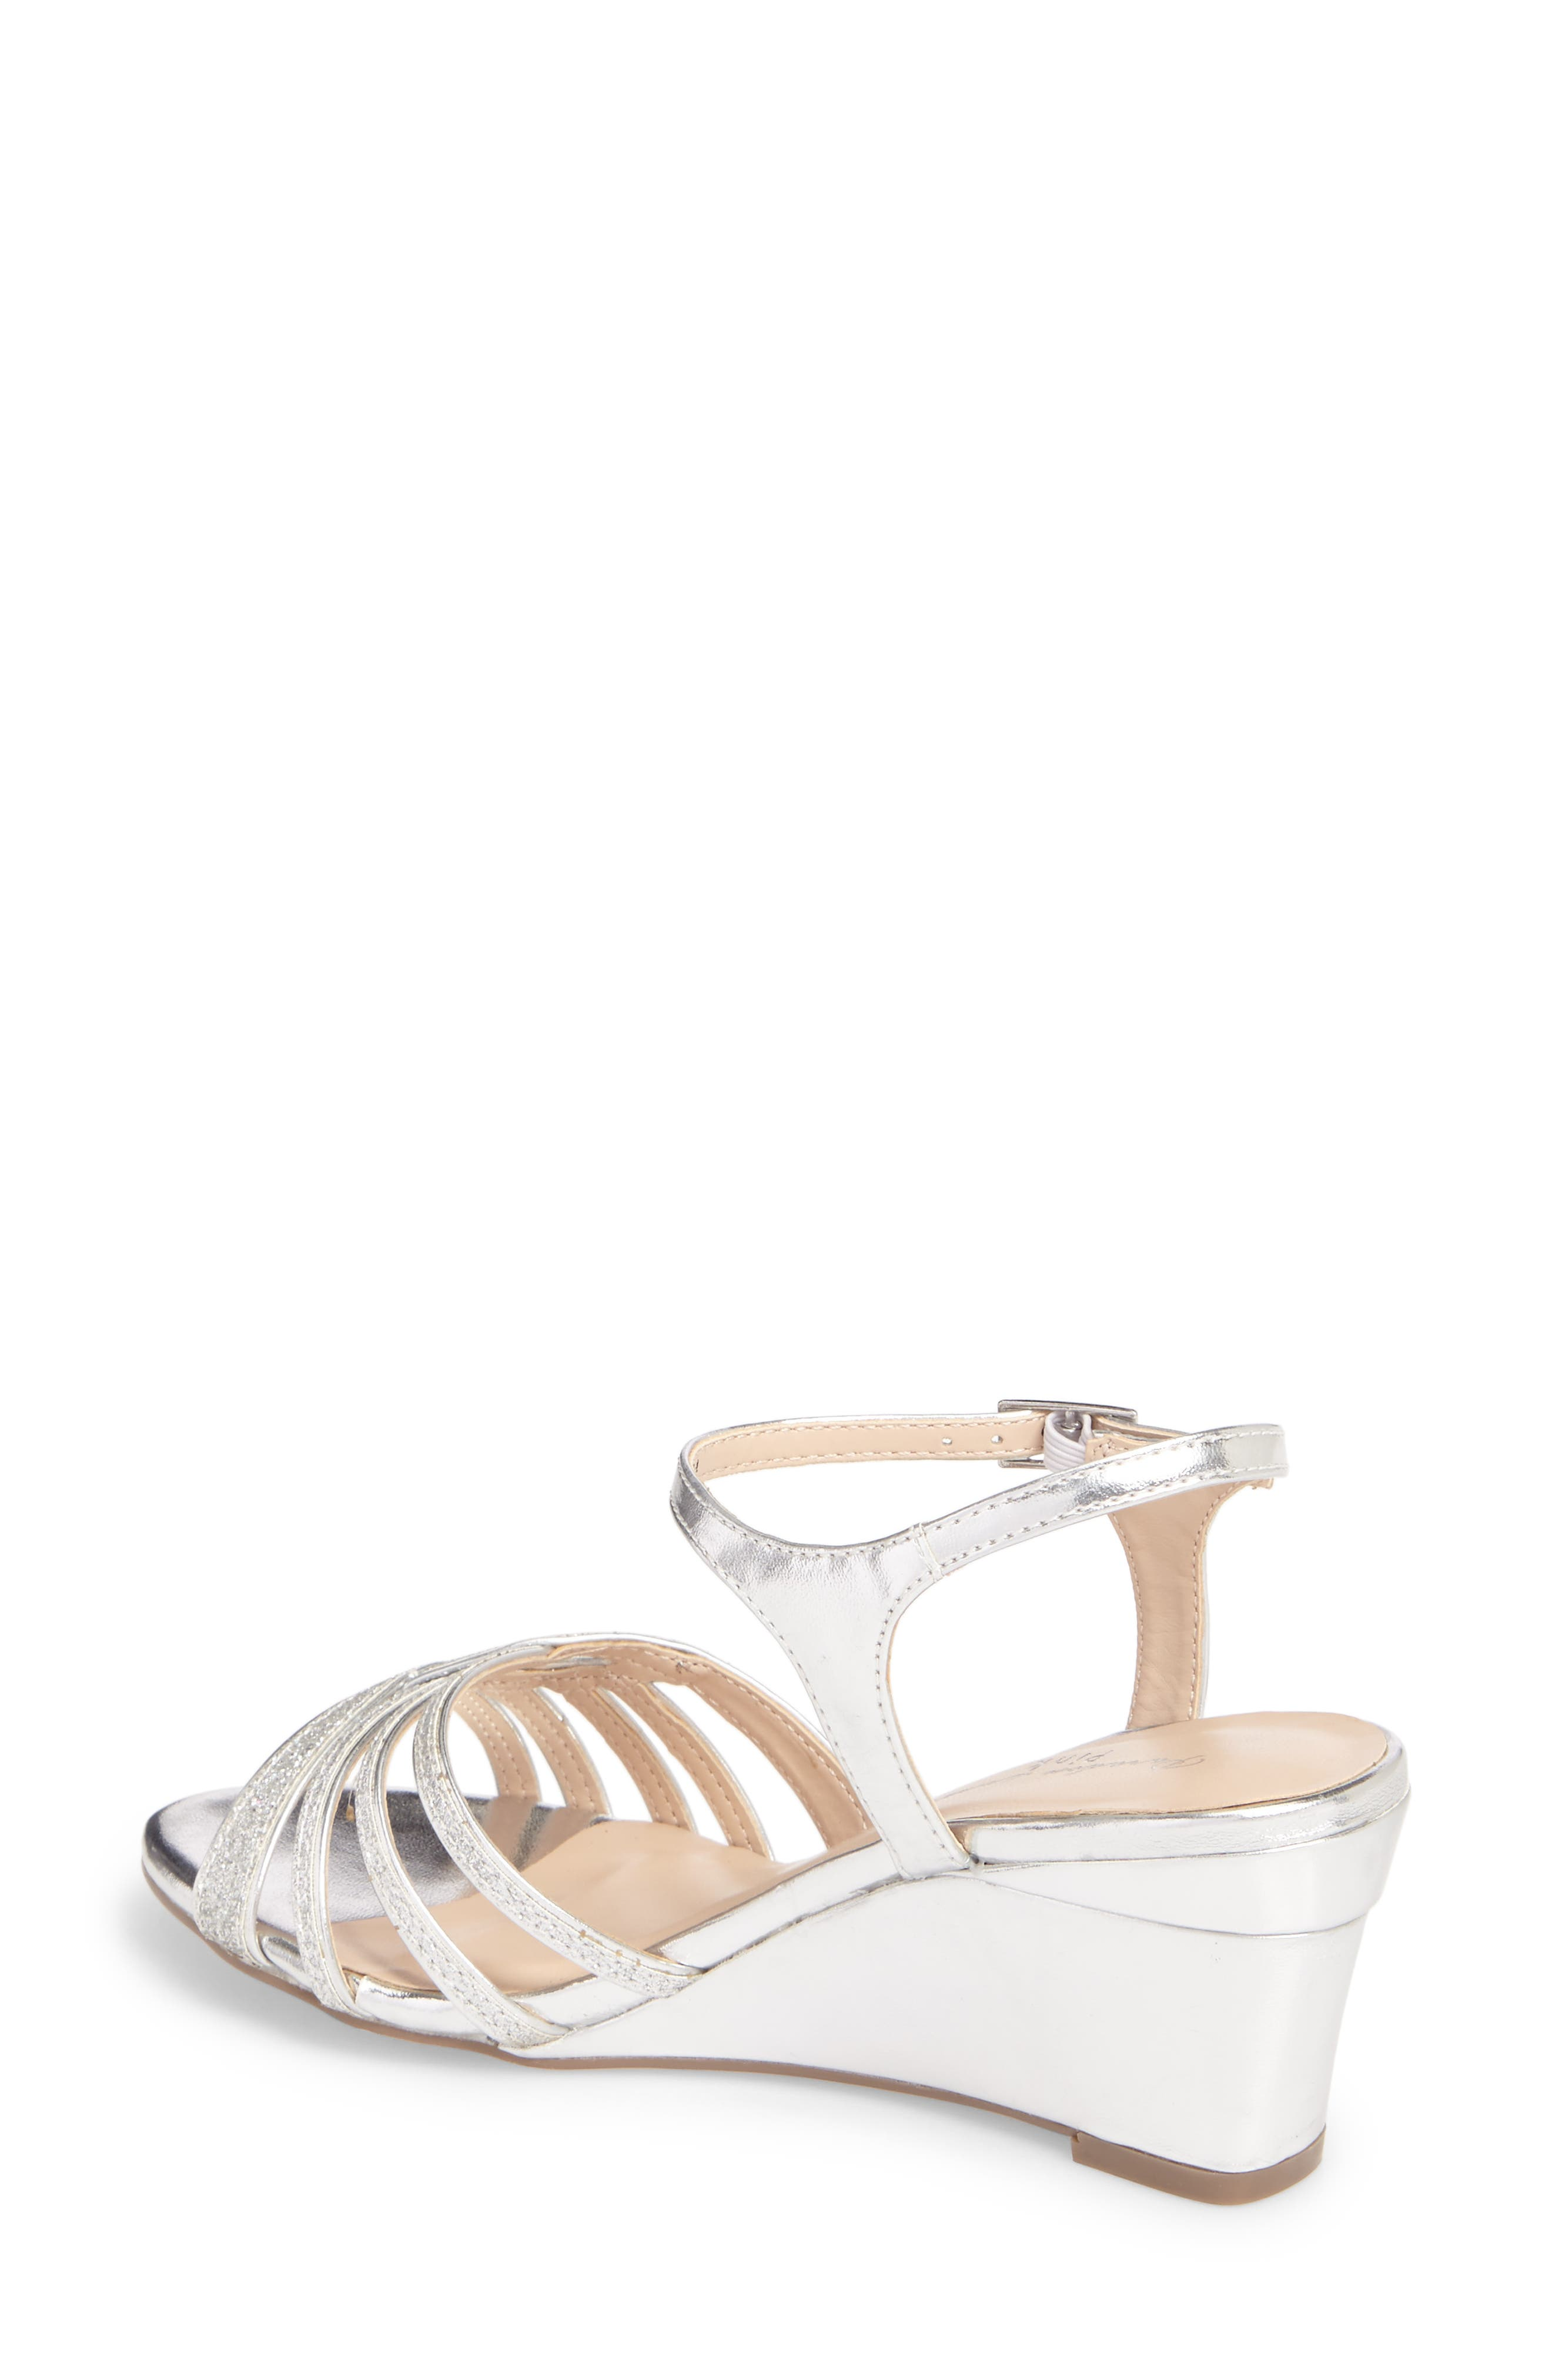 Karianne Wedge Sandal,                             Alternate thumbnail 2, color,                             Silver